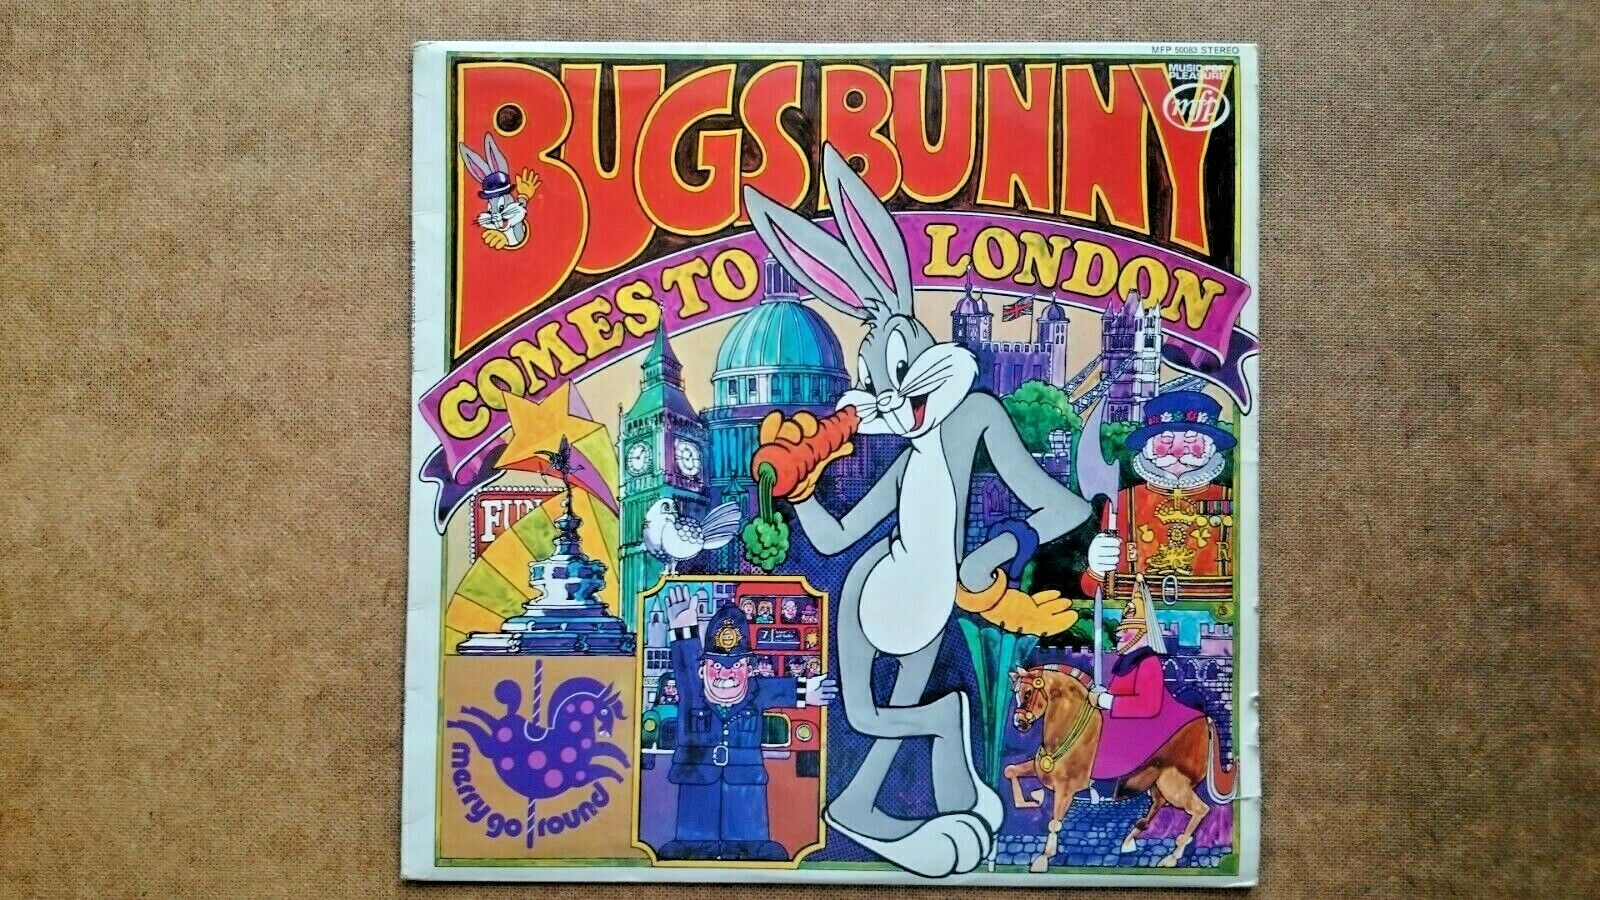 Bugs Bunny Comes to Town Vinyl LP Record (1973)